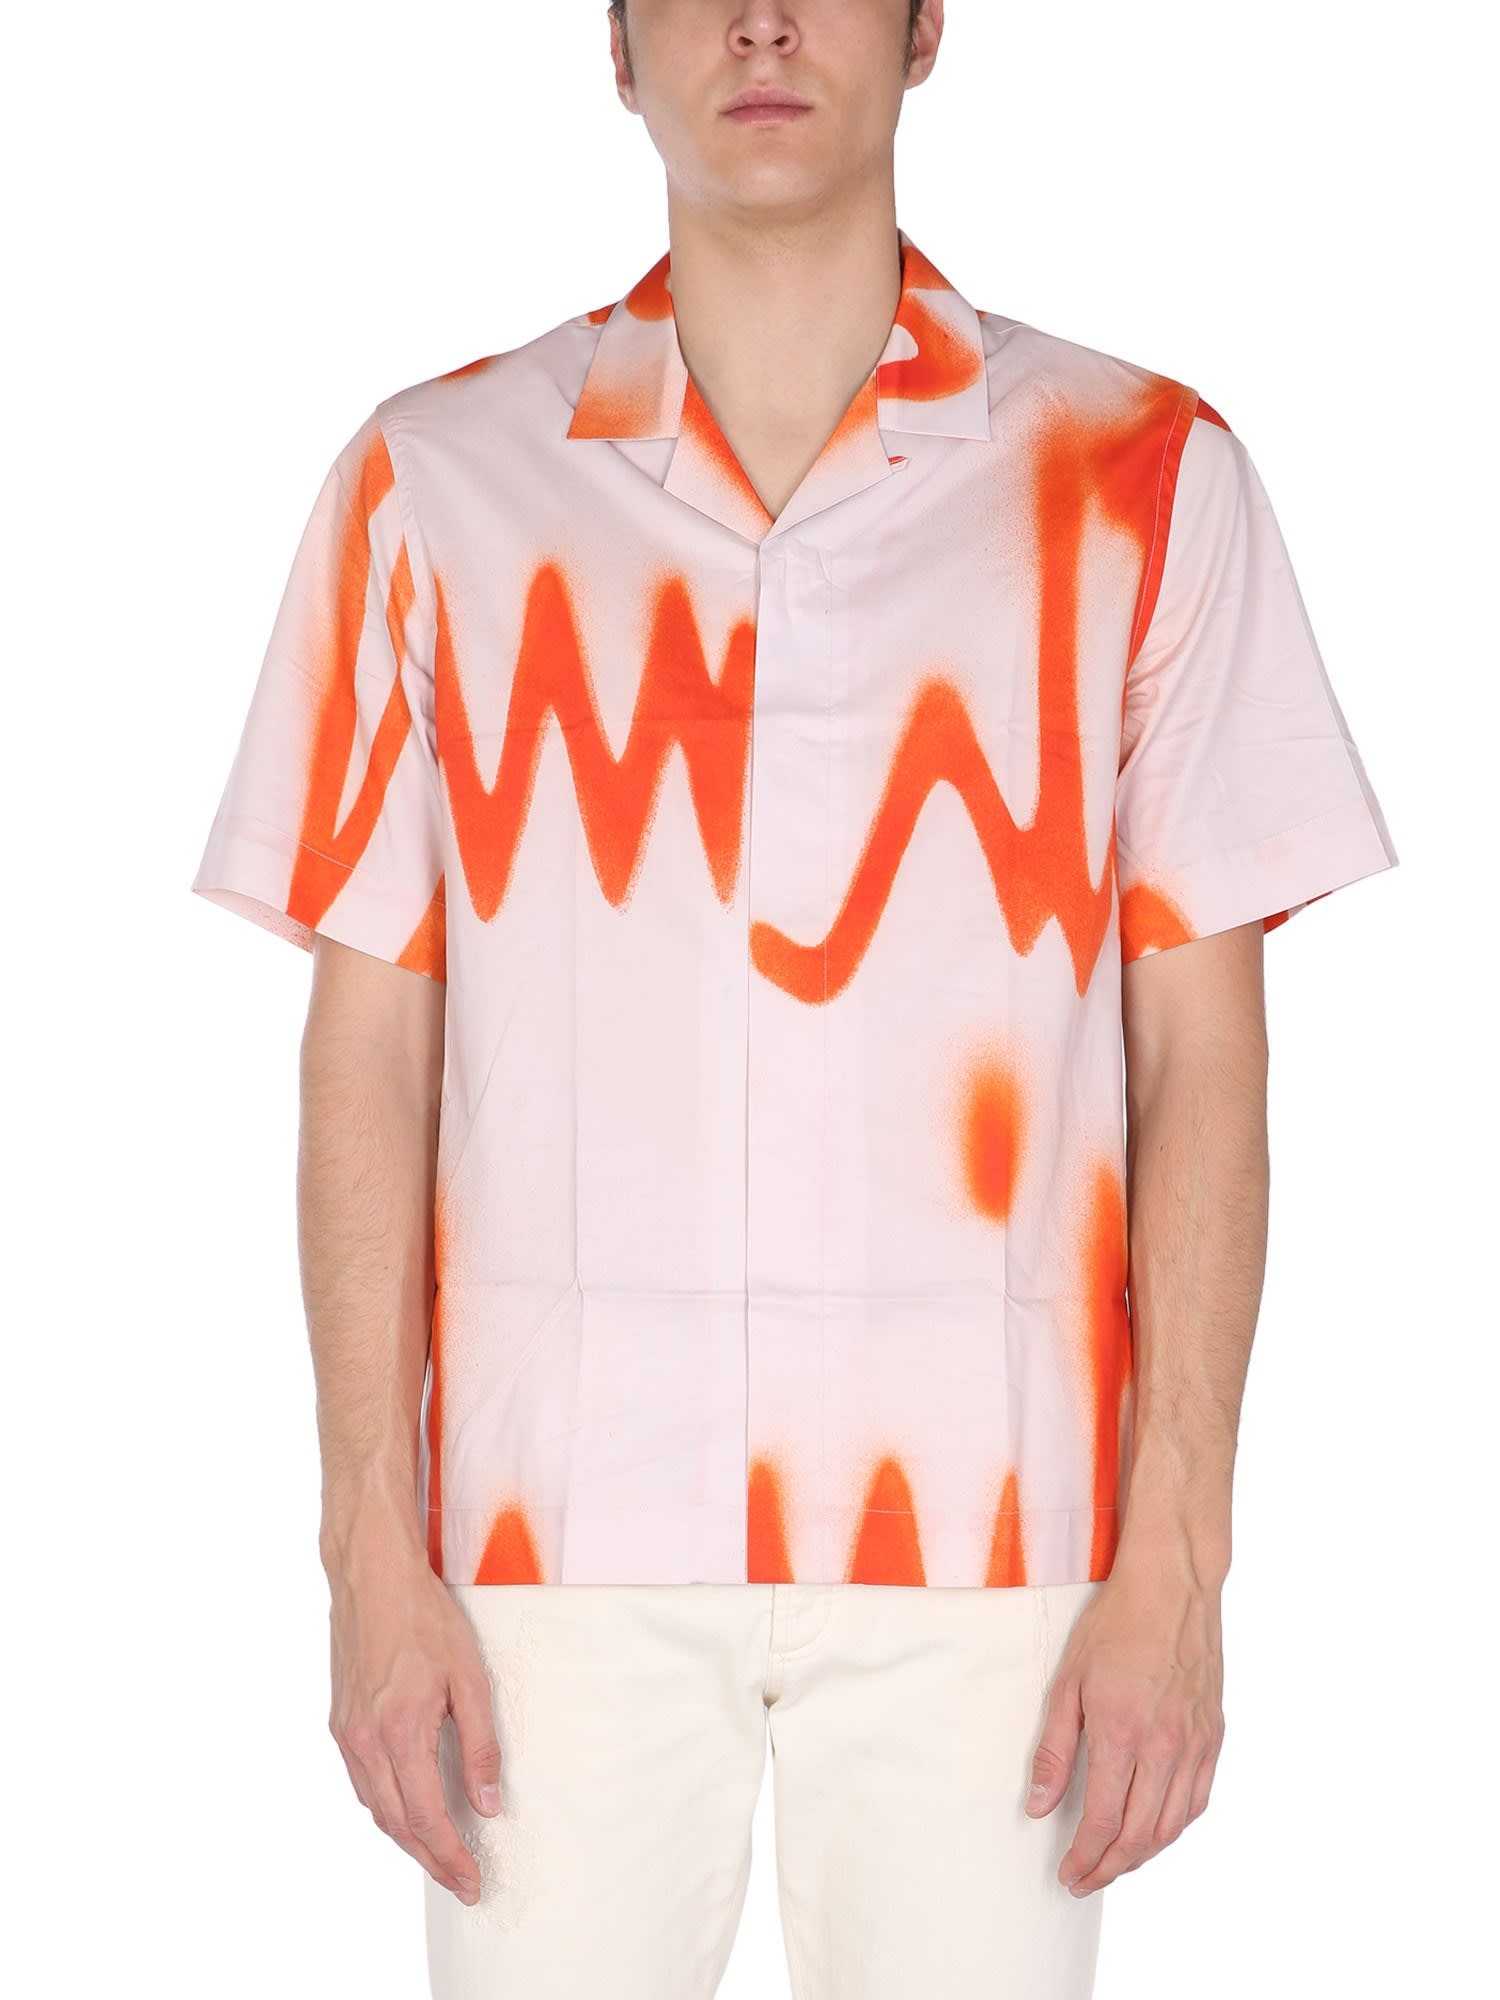 Paul Smith Taylored Fit Shirt